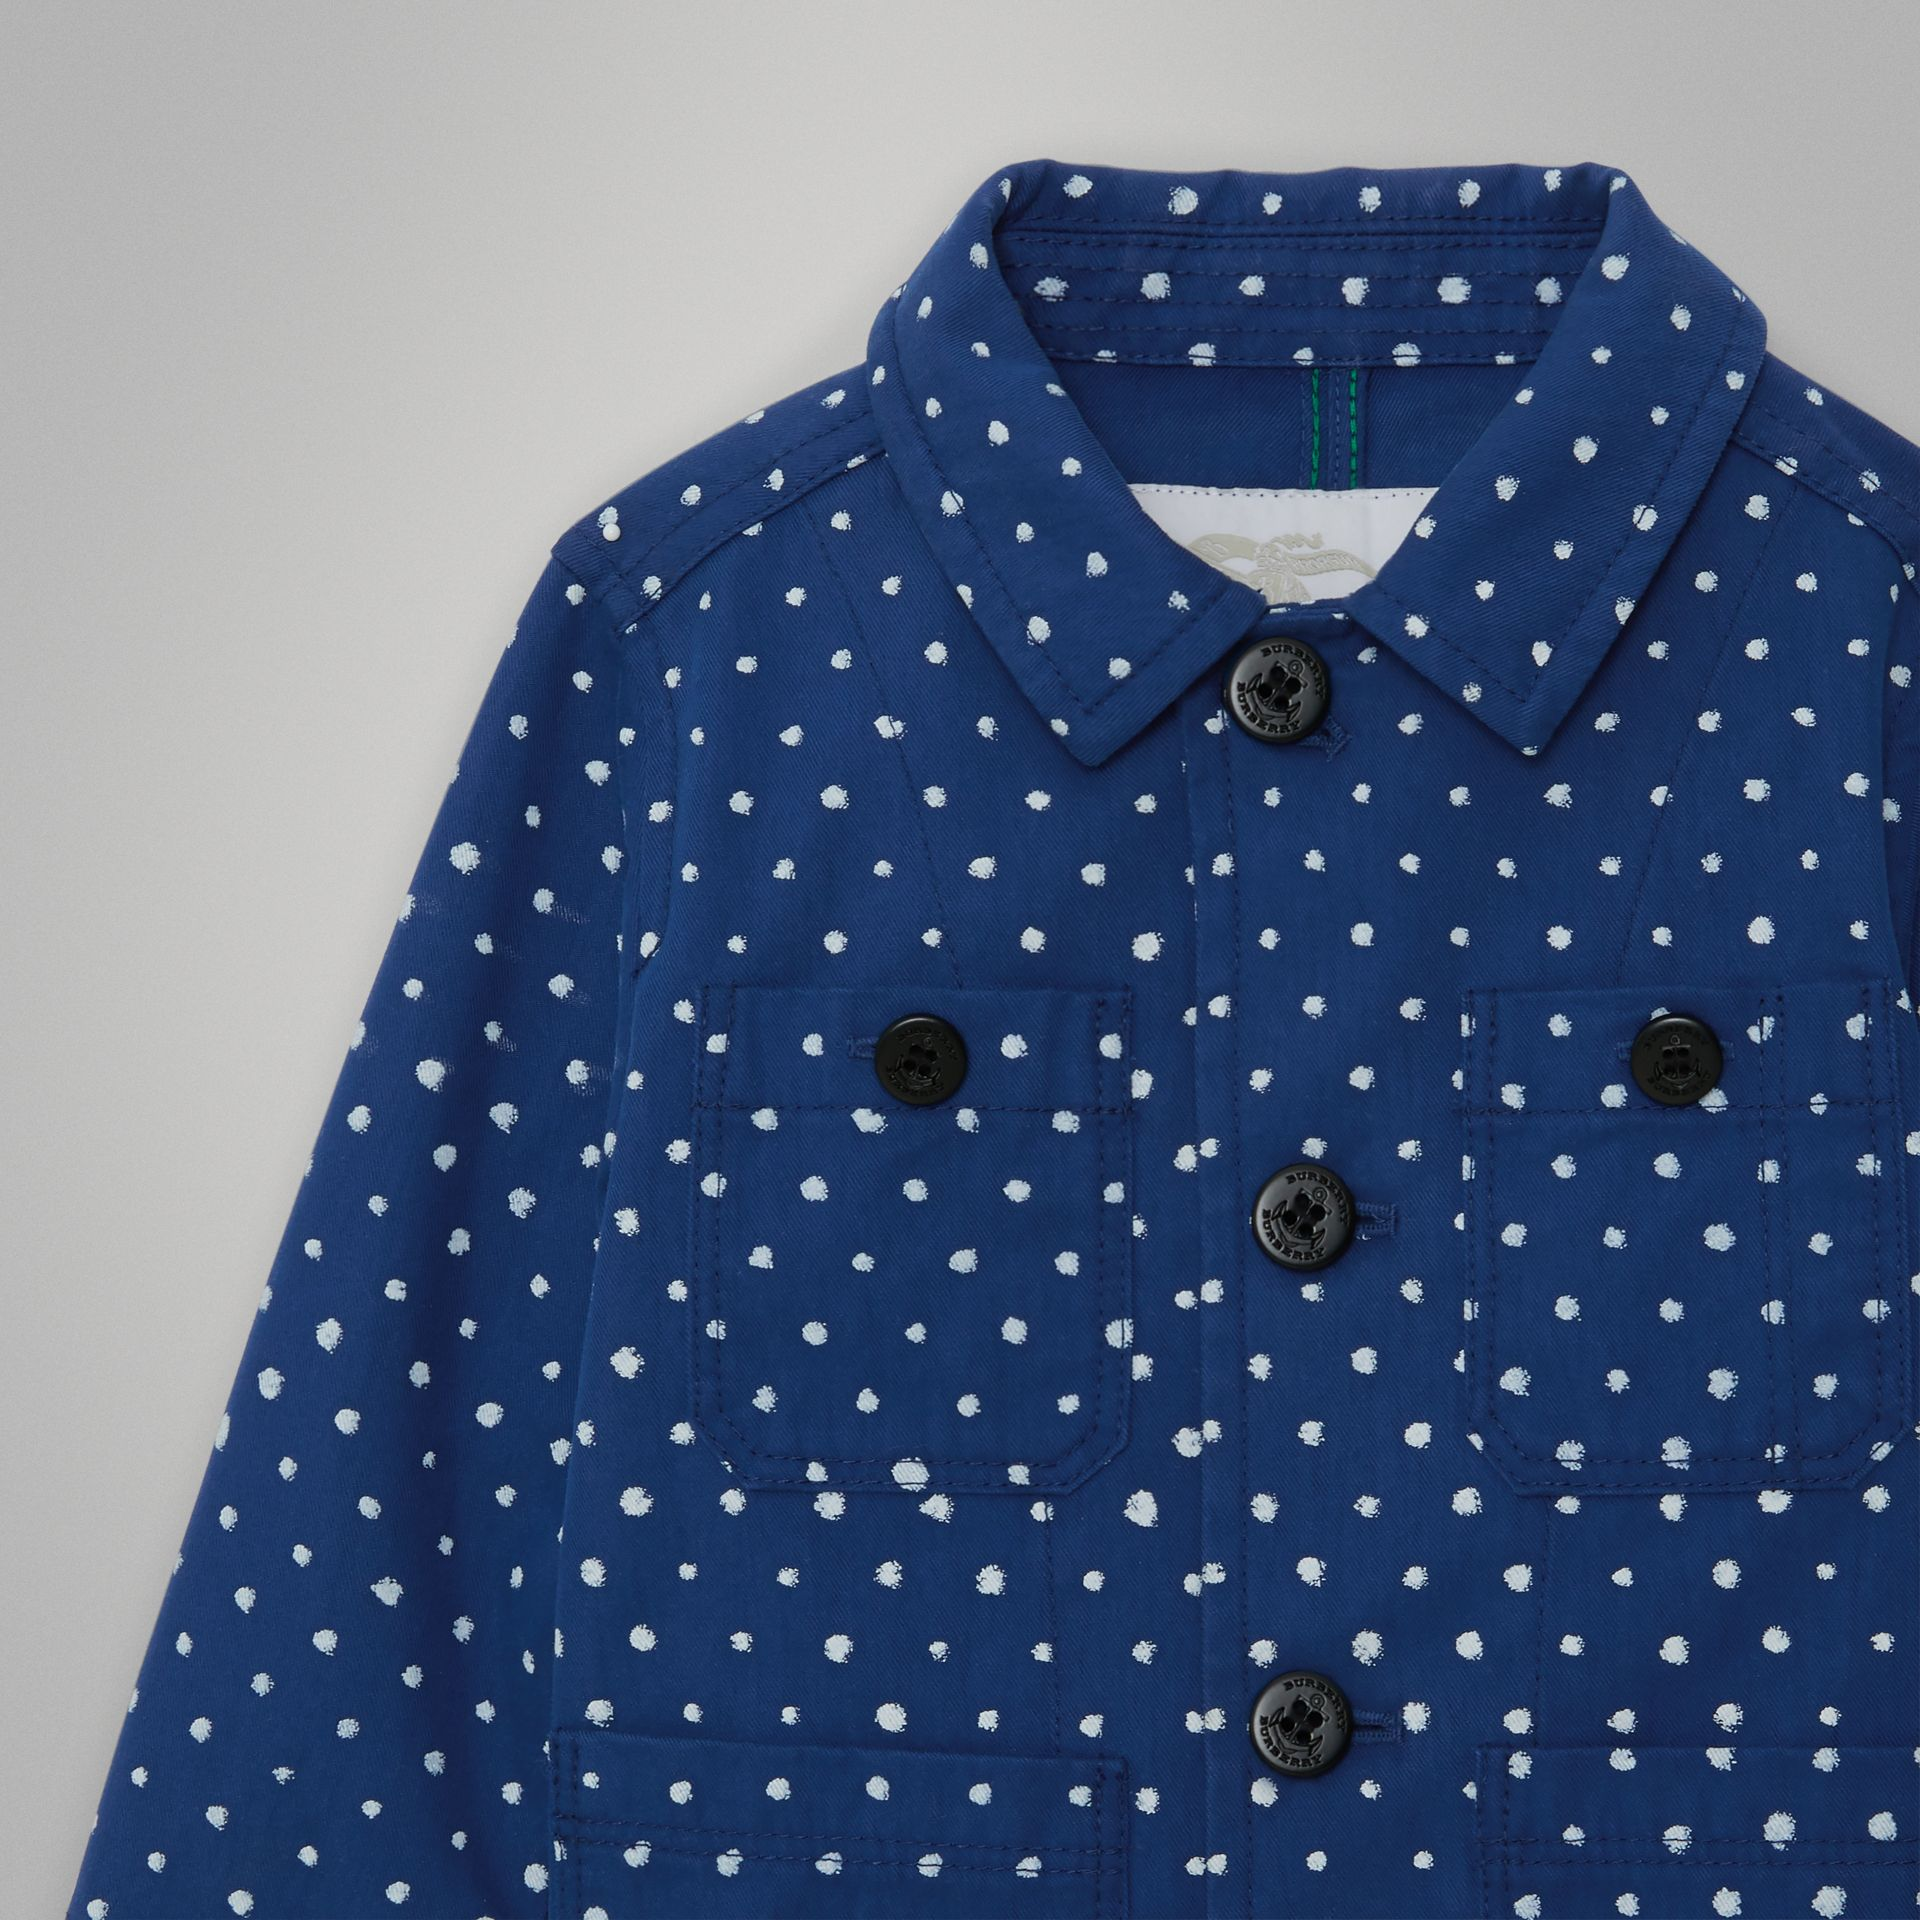 Spot Print Cotton Blend Jacket in Bright Navy - Children | Burberry United Kingdom - gallery image 4